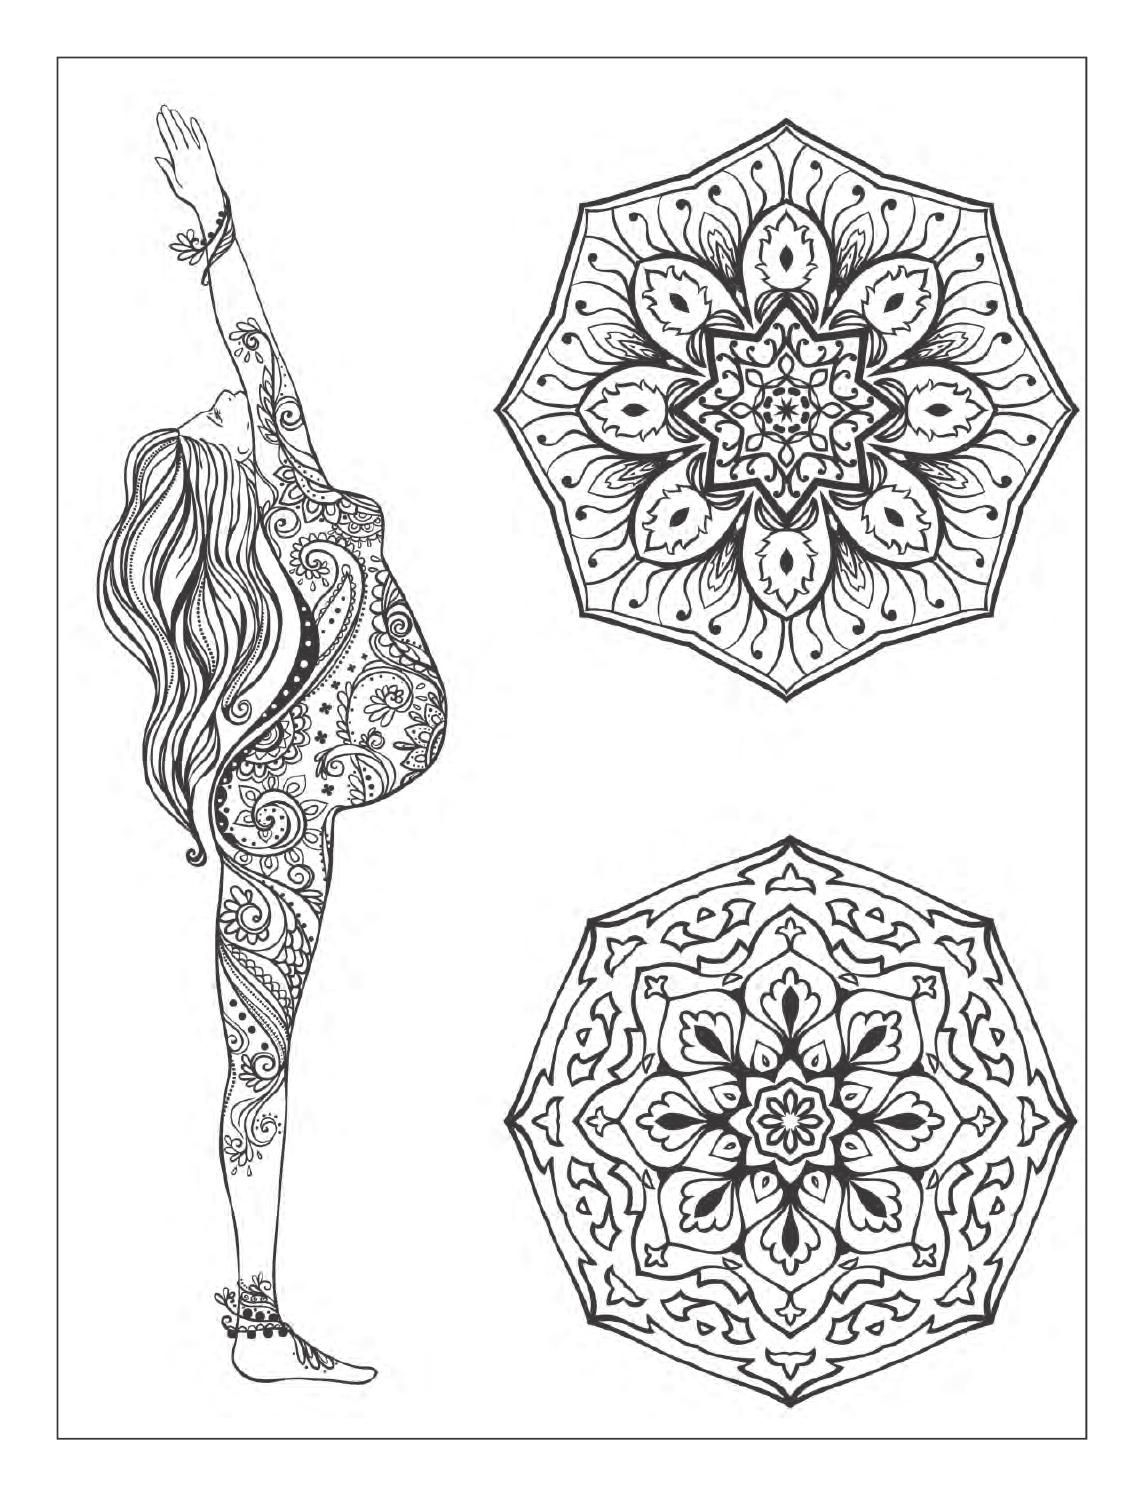 1147x1496 Awesome Yoga And Meditation Coloring Book For Adults With Yoga